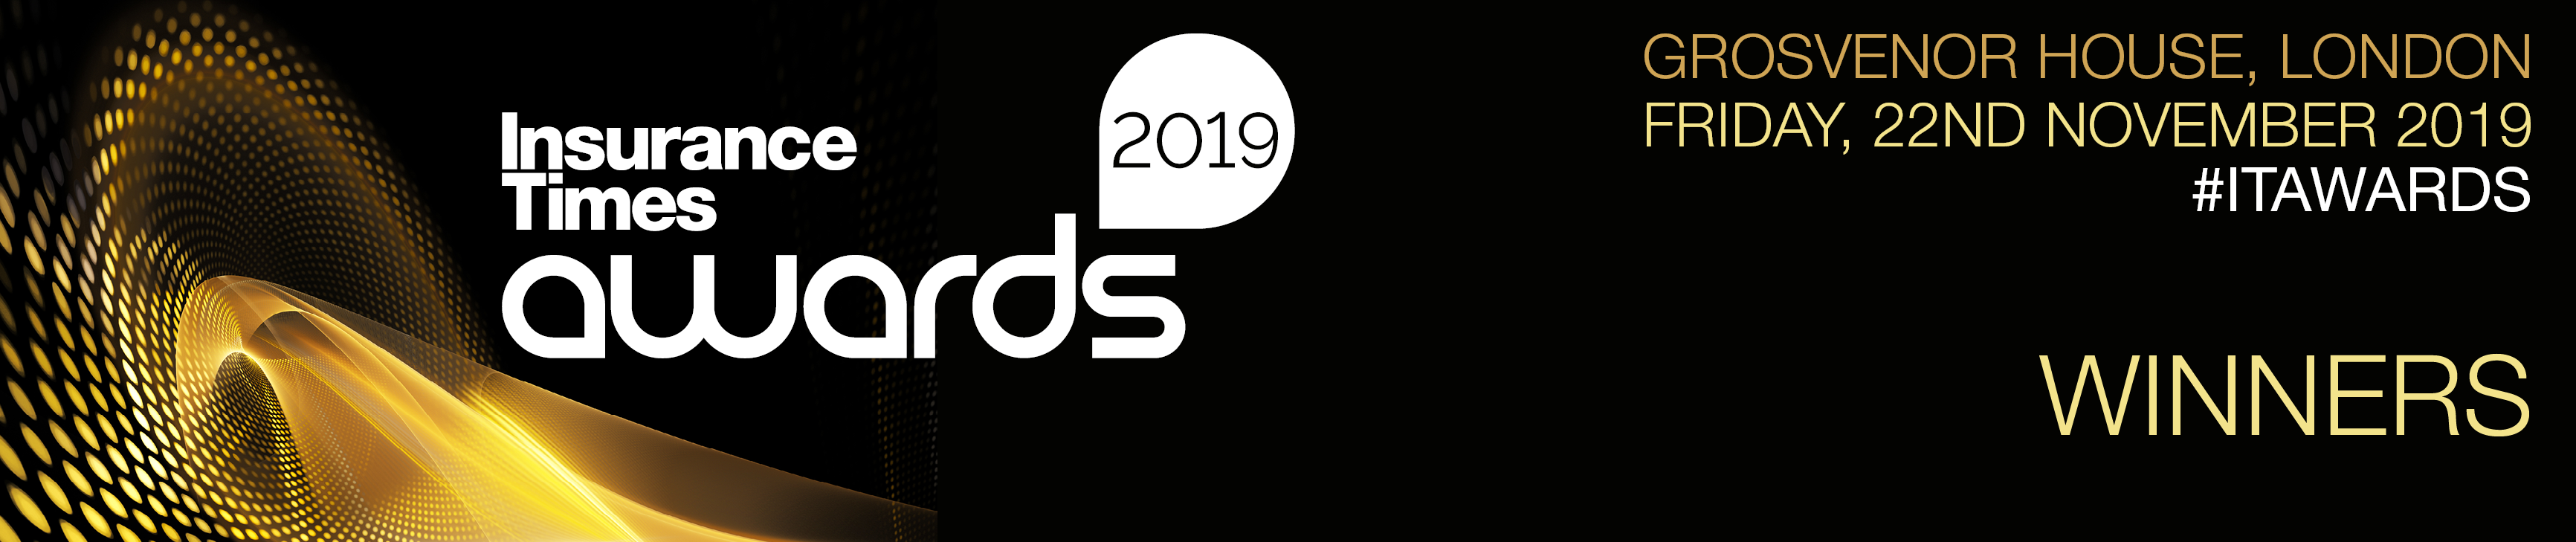 Winners announced | Insurance Times Awards 2019 | Grosvenor House | Friday 22 November 2019